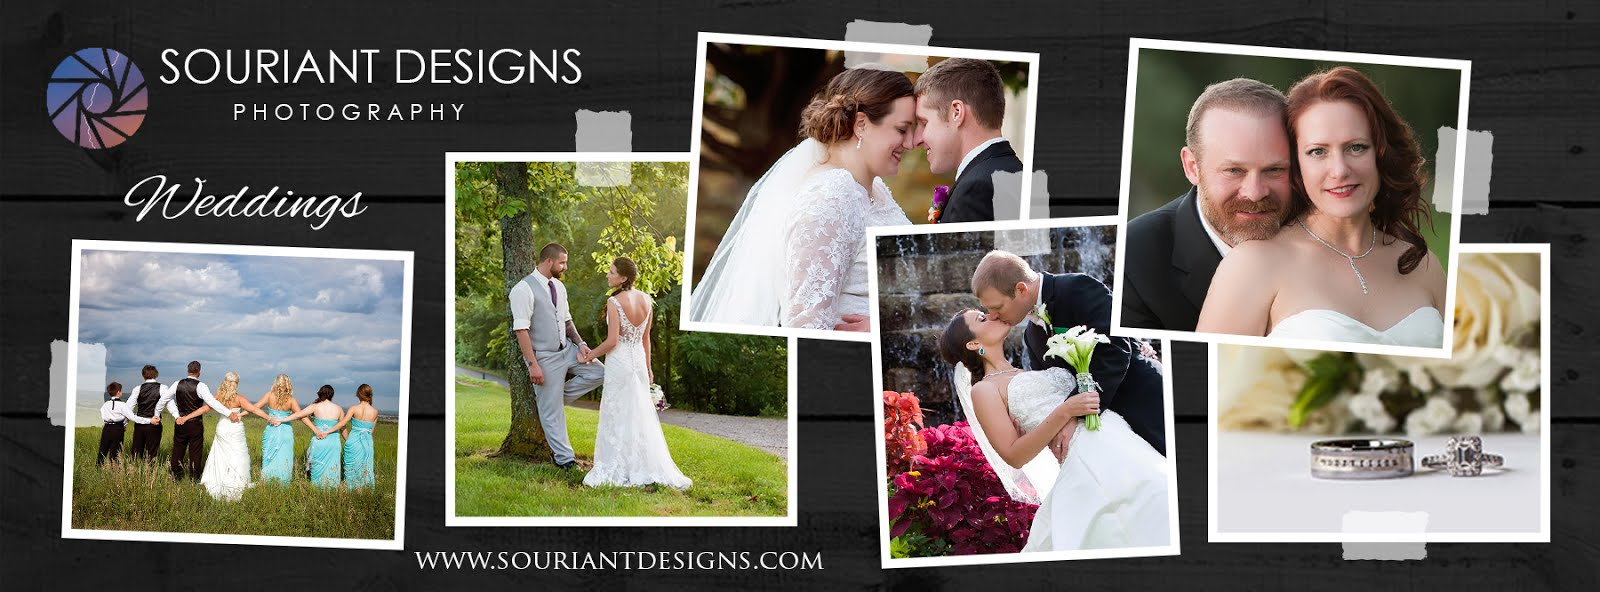 Ali Corbett/Souriant Designs Photography Blog